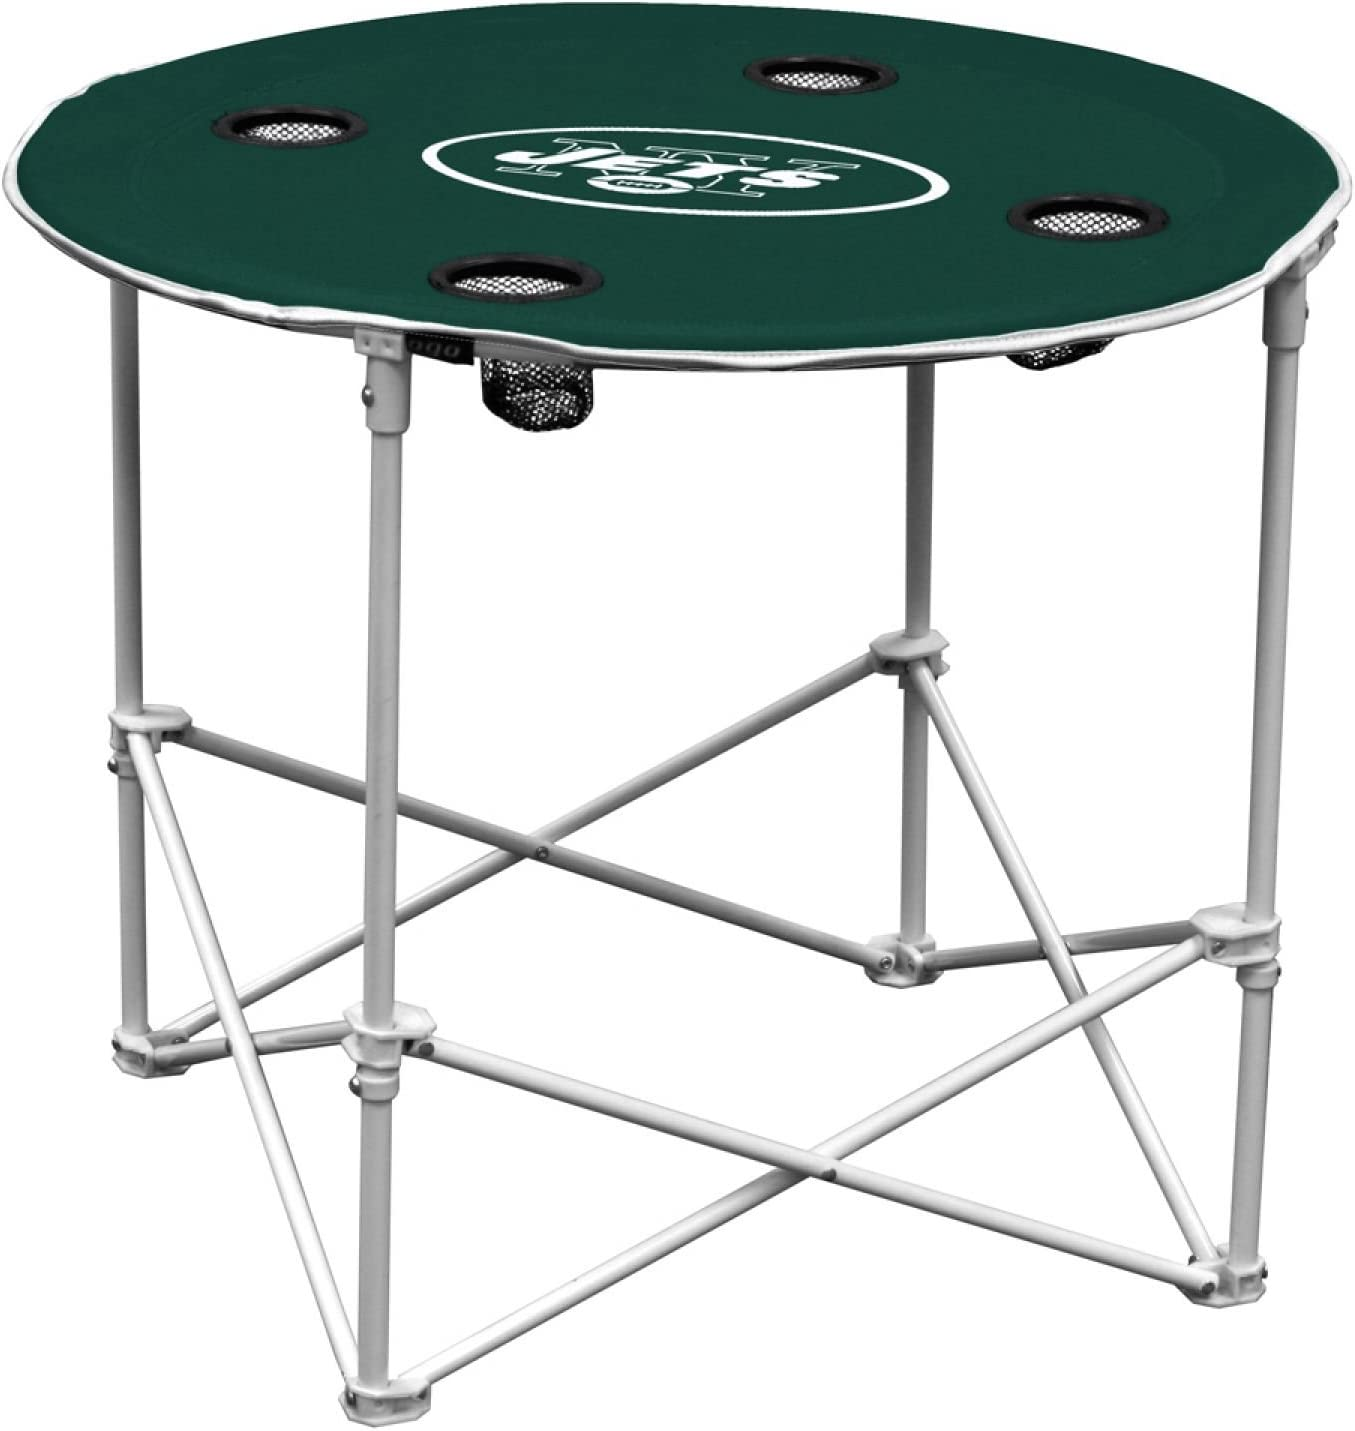 New York Jets  Collapsible Round Table with 4 Cup Holders and Carry Bag Multi